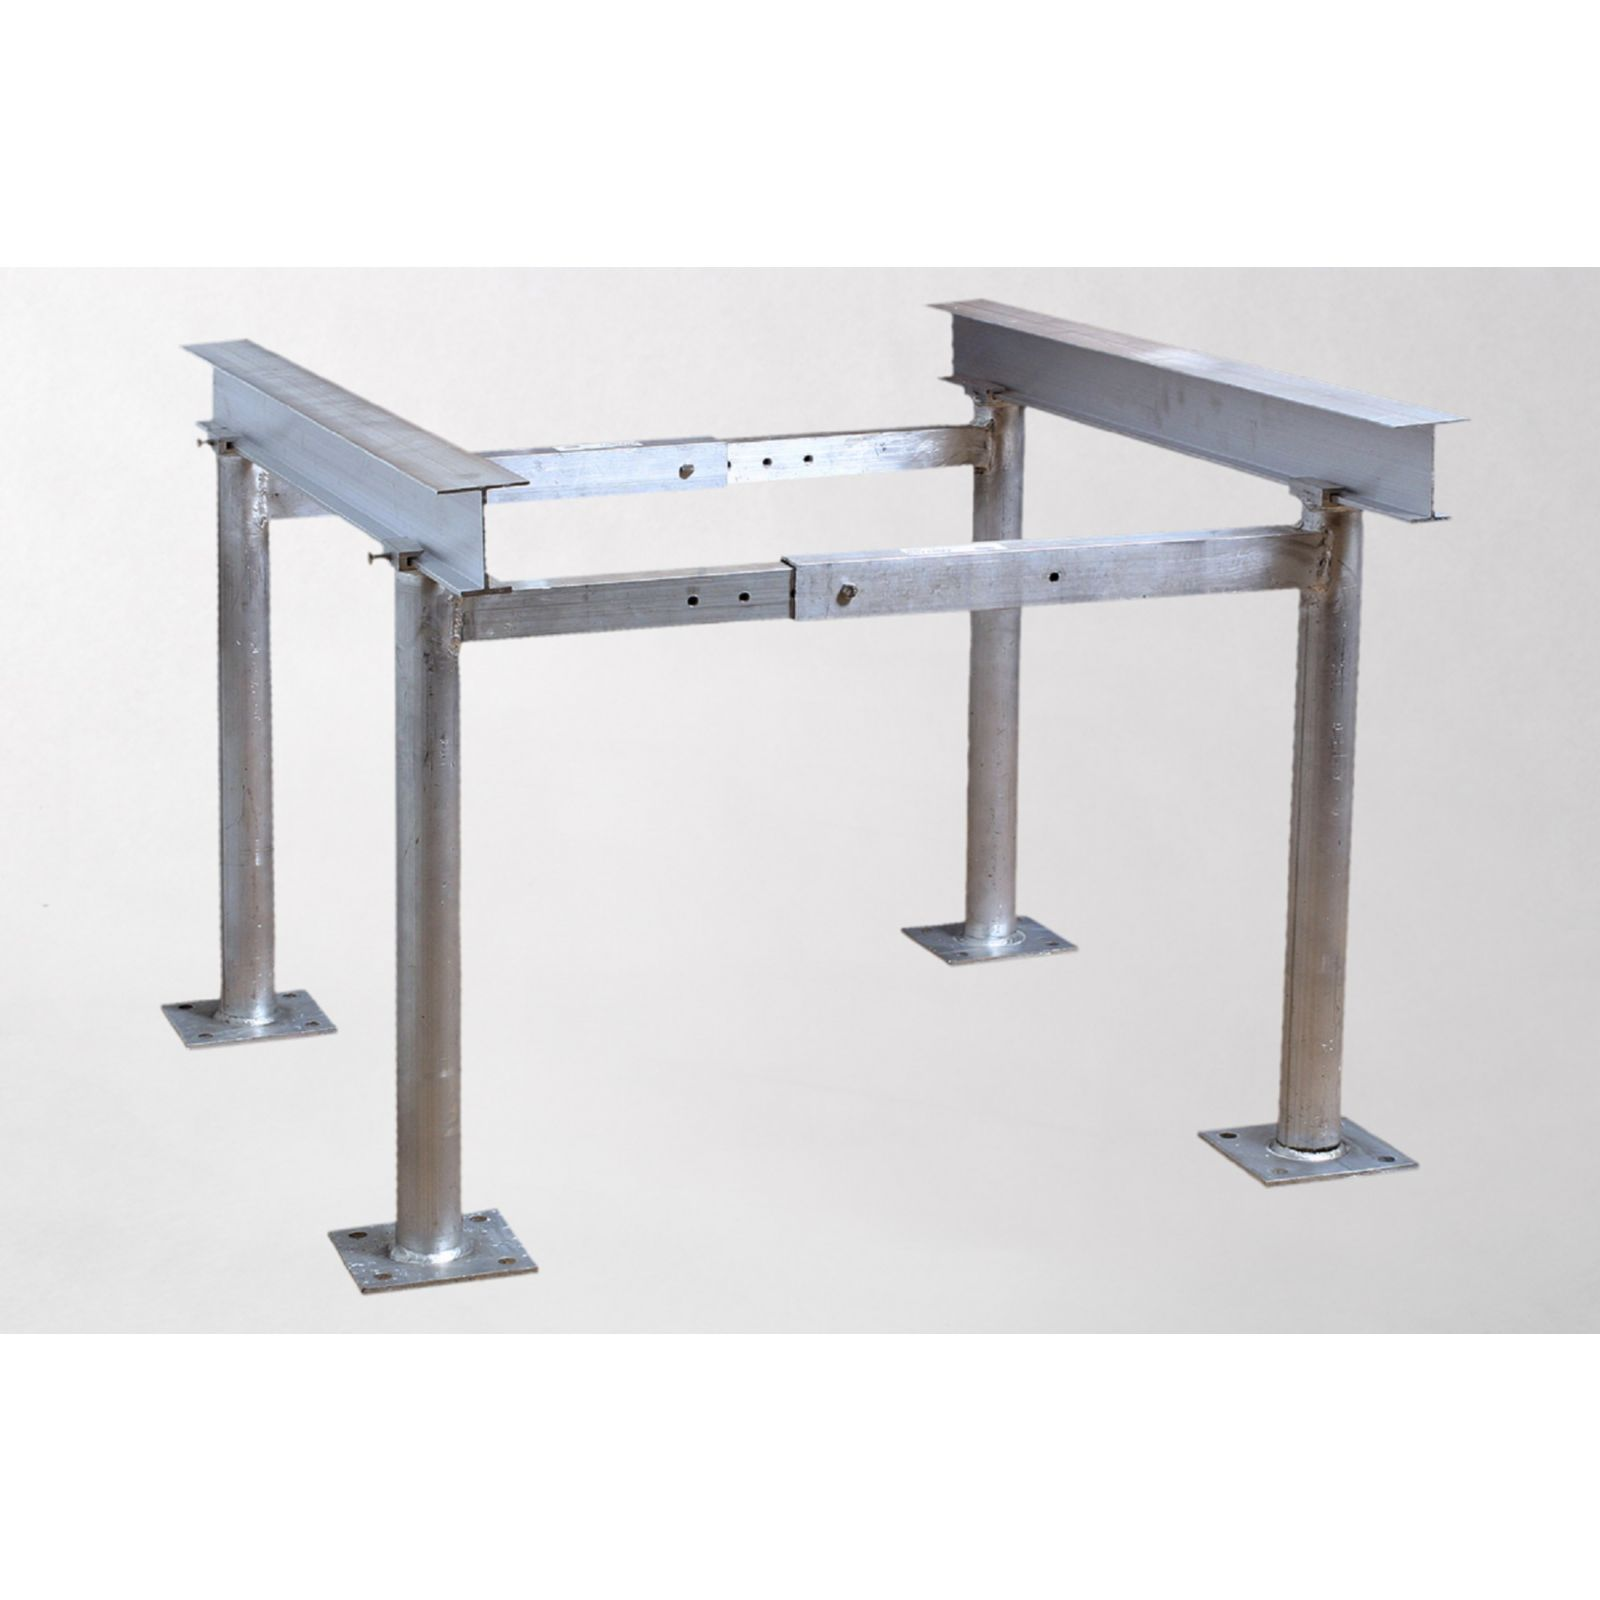 "Miami Tech AST240Q-K3 - Aluminum Condensing Unit Telescoping Stand, 3' I-Beams + 24"" Legs"